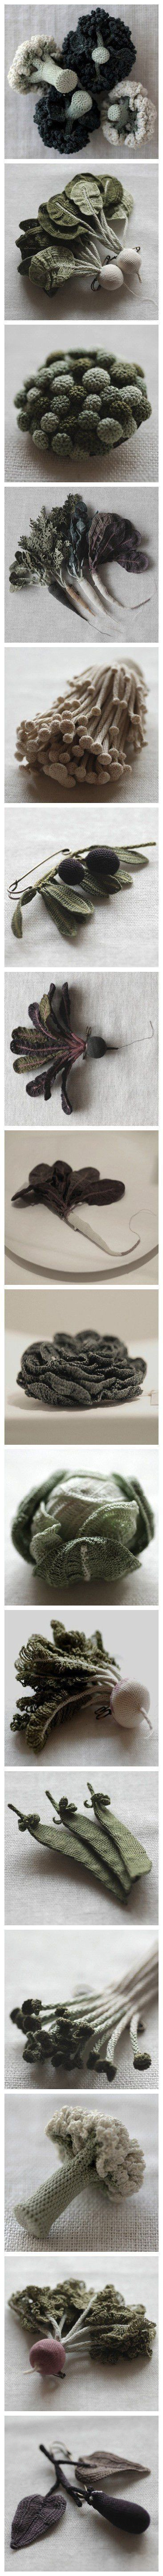 Knitted Vegetables by Jung-jung.